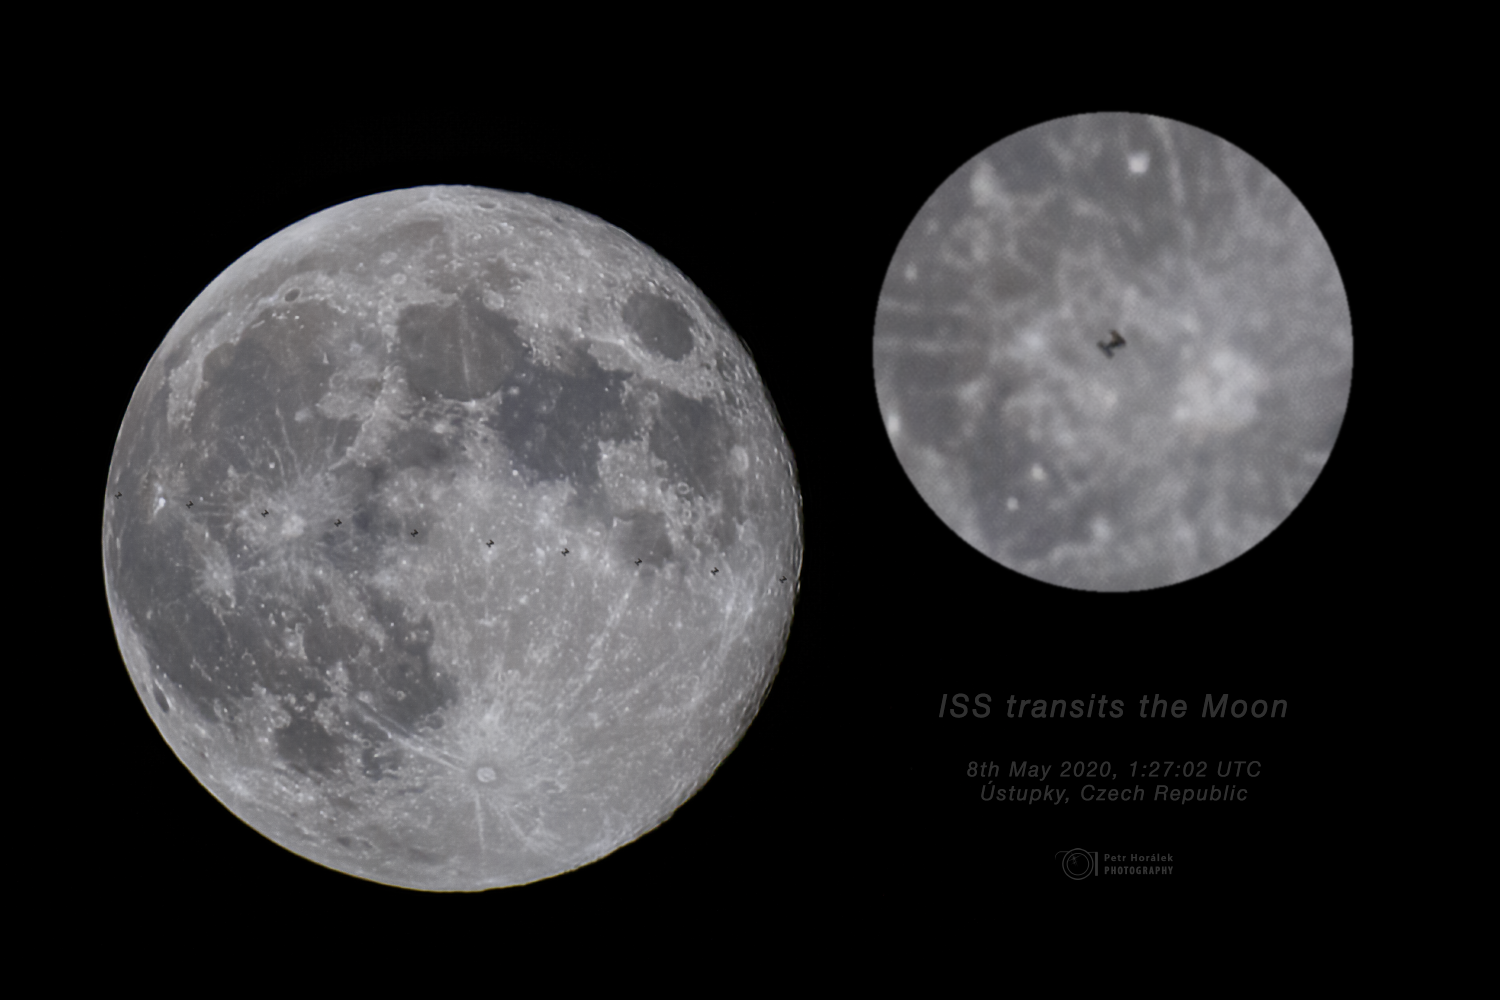 ISS transits the Perigee Moon